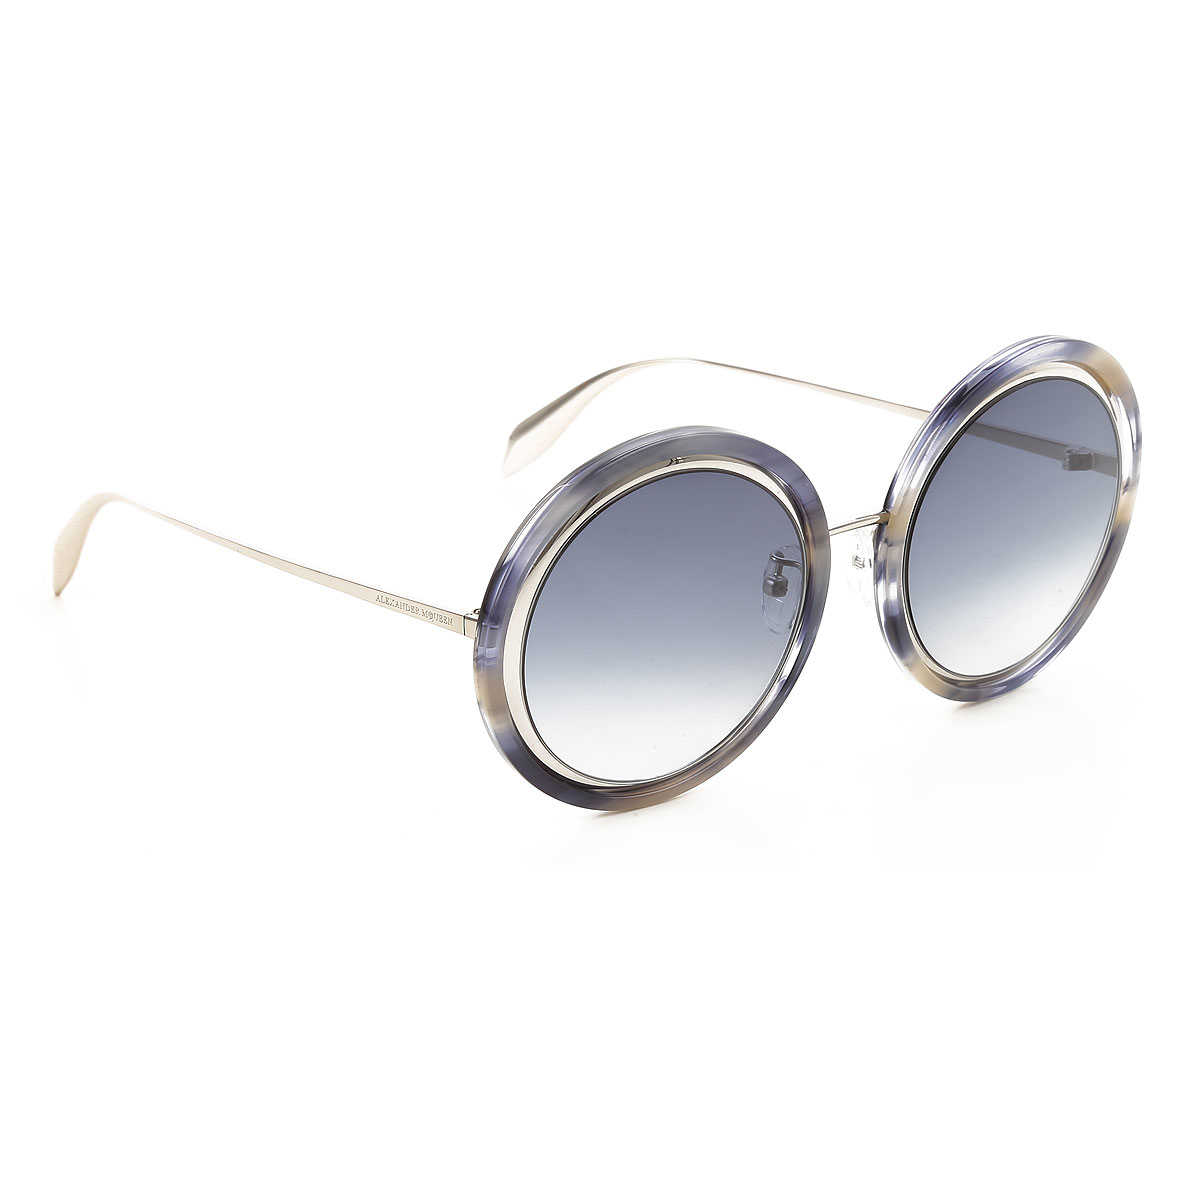 Alexander McQueen Sunglasses On Sale